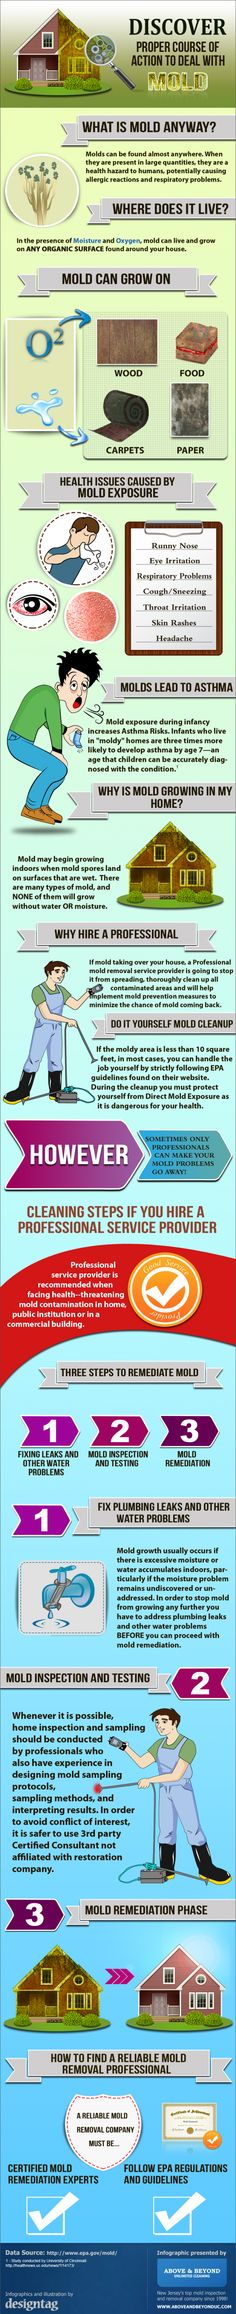 24 Best Mold Removal images